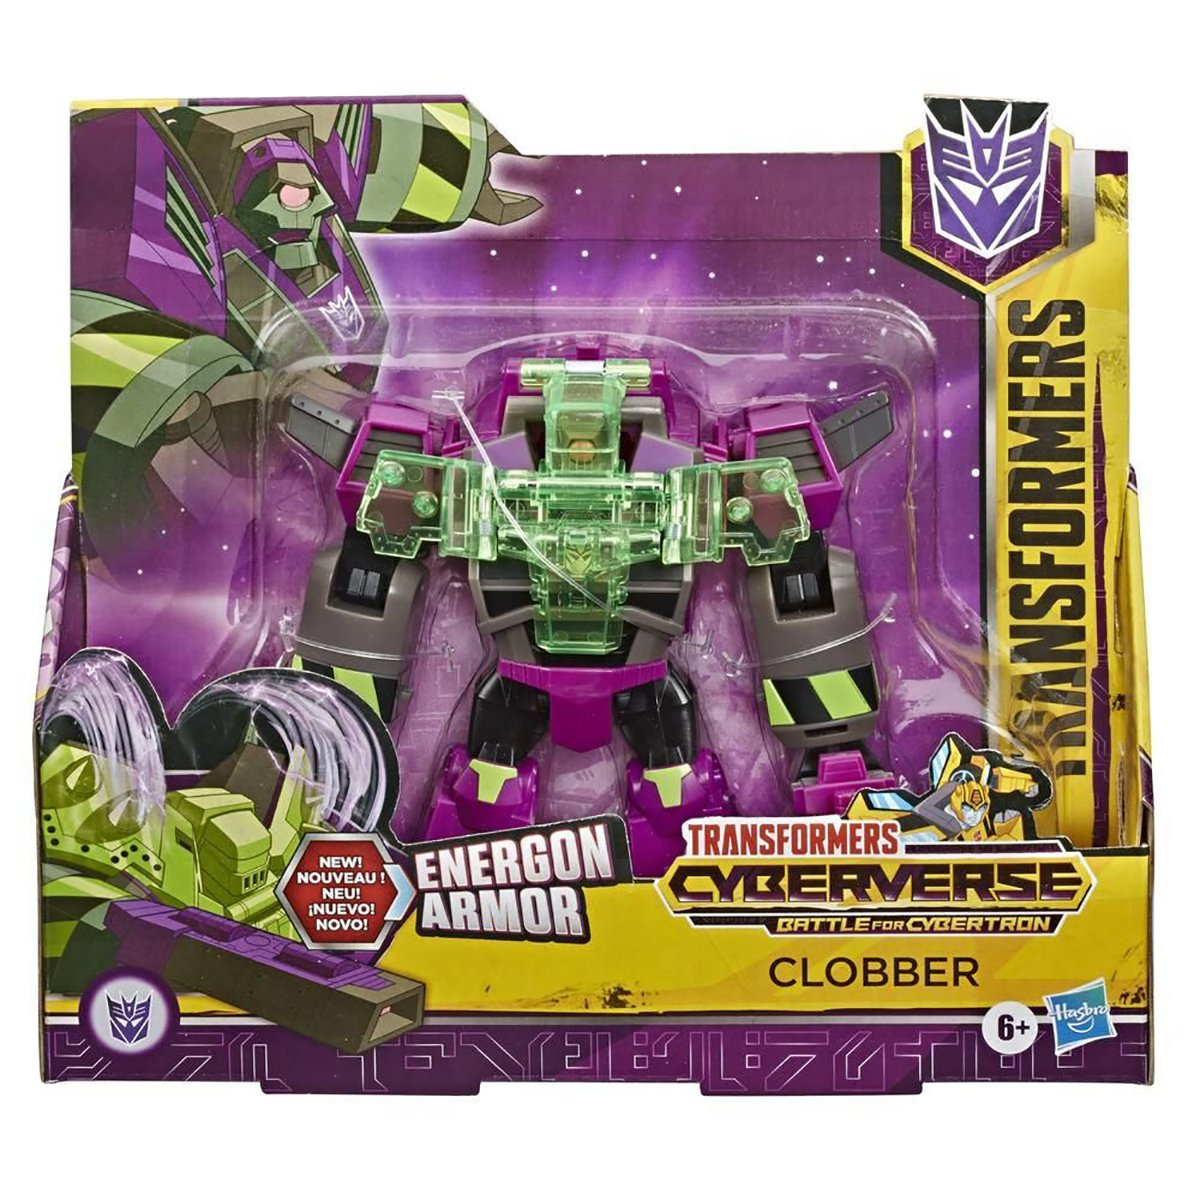 Figurina Transformers Cyberverse Action Attacker Ultra, Clobber E7108